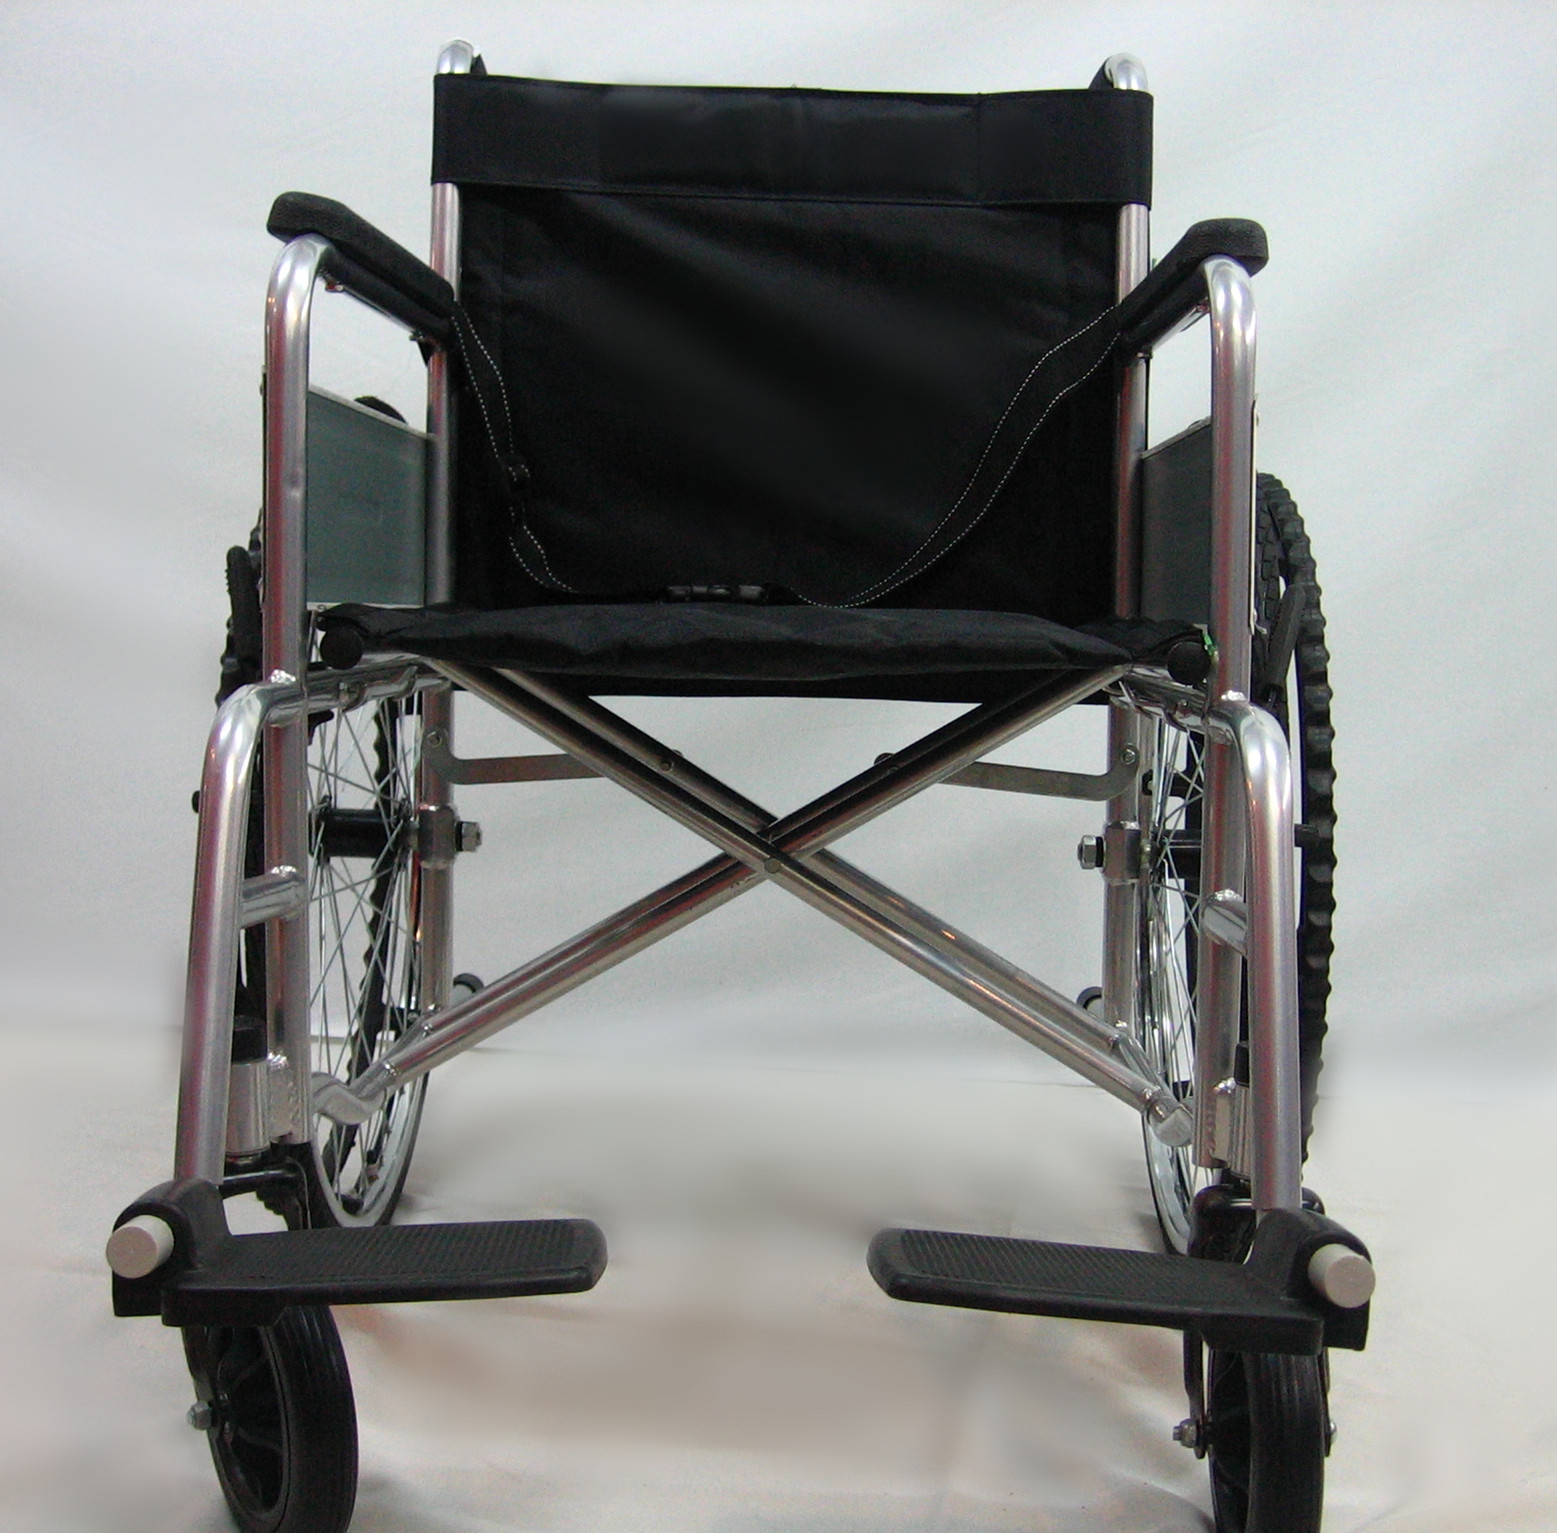 Wheel Chair Buy Online Thermarest Kit We Have More Than 36 Types Of Wheelchair Kerusi Roda In